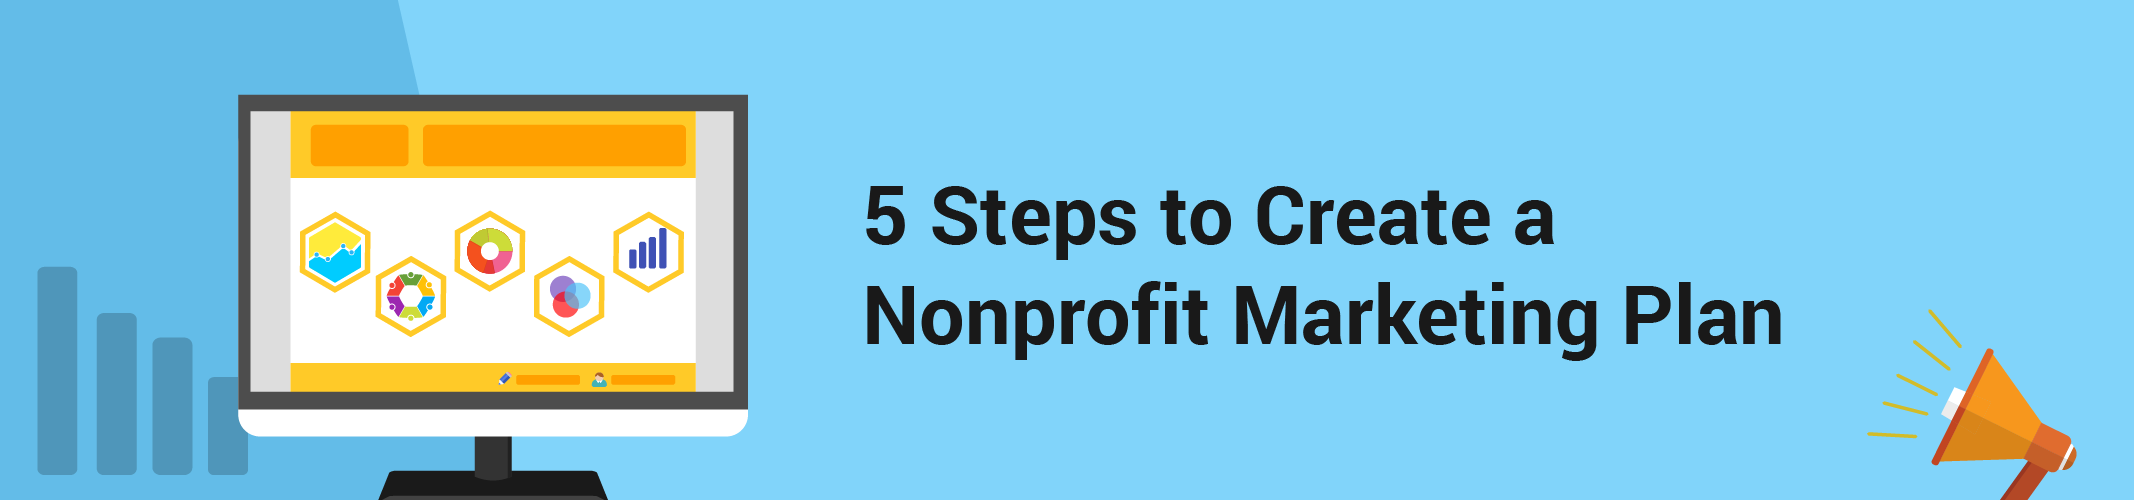 5 Steps to Create a Nonprofit Marketing Plan-charityhowto